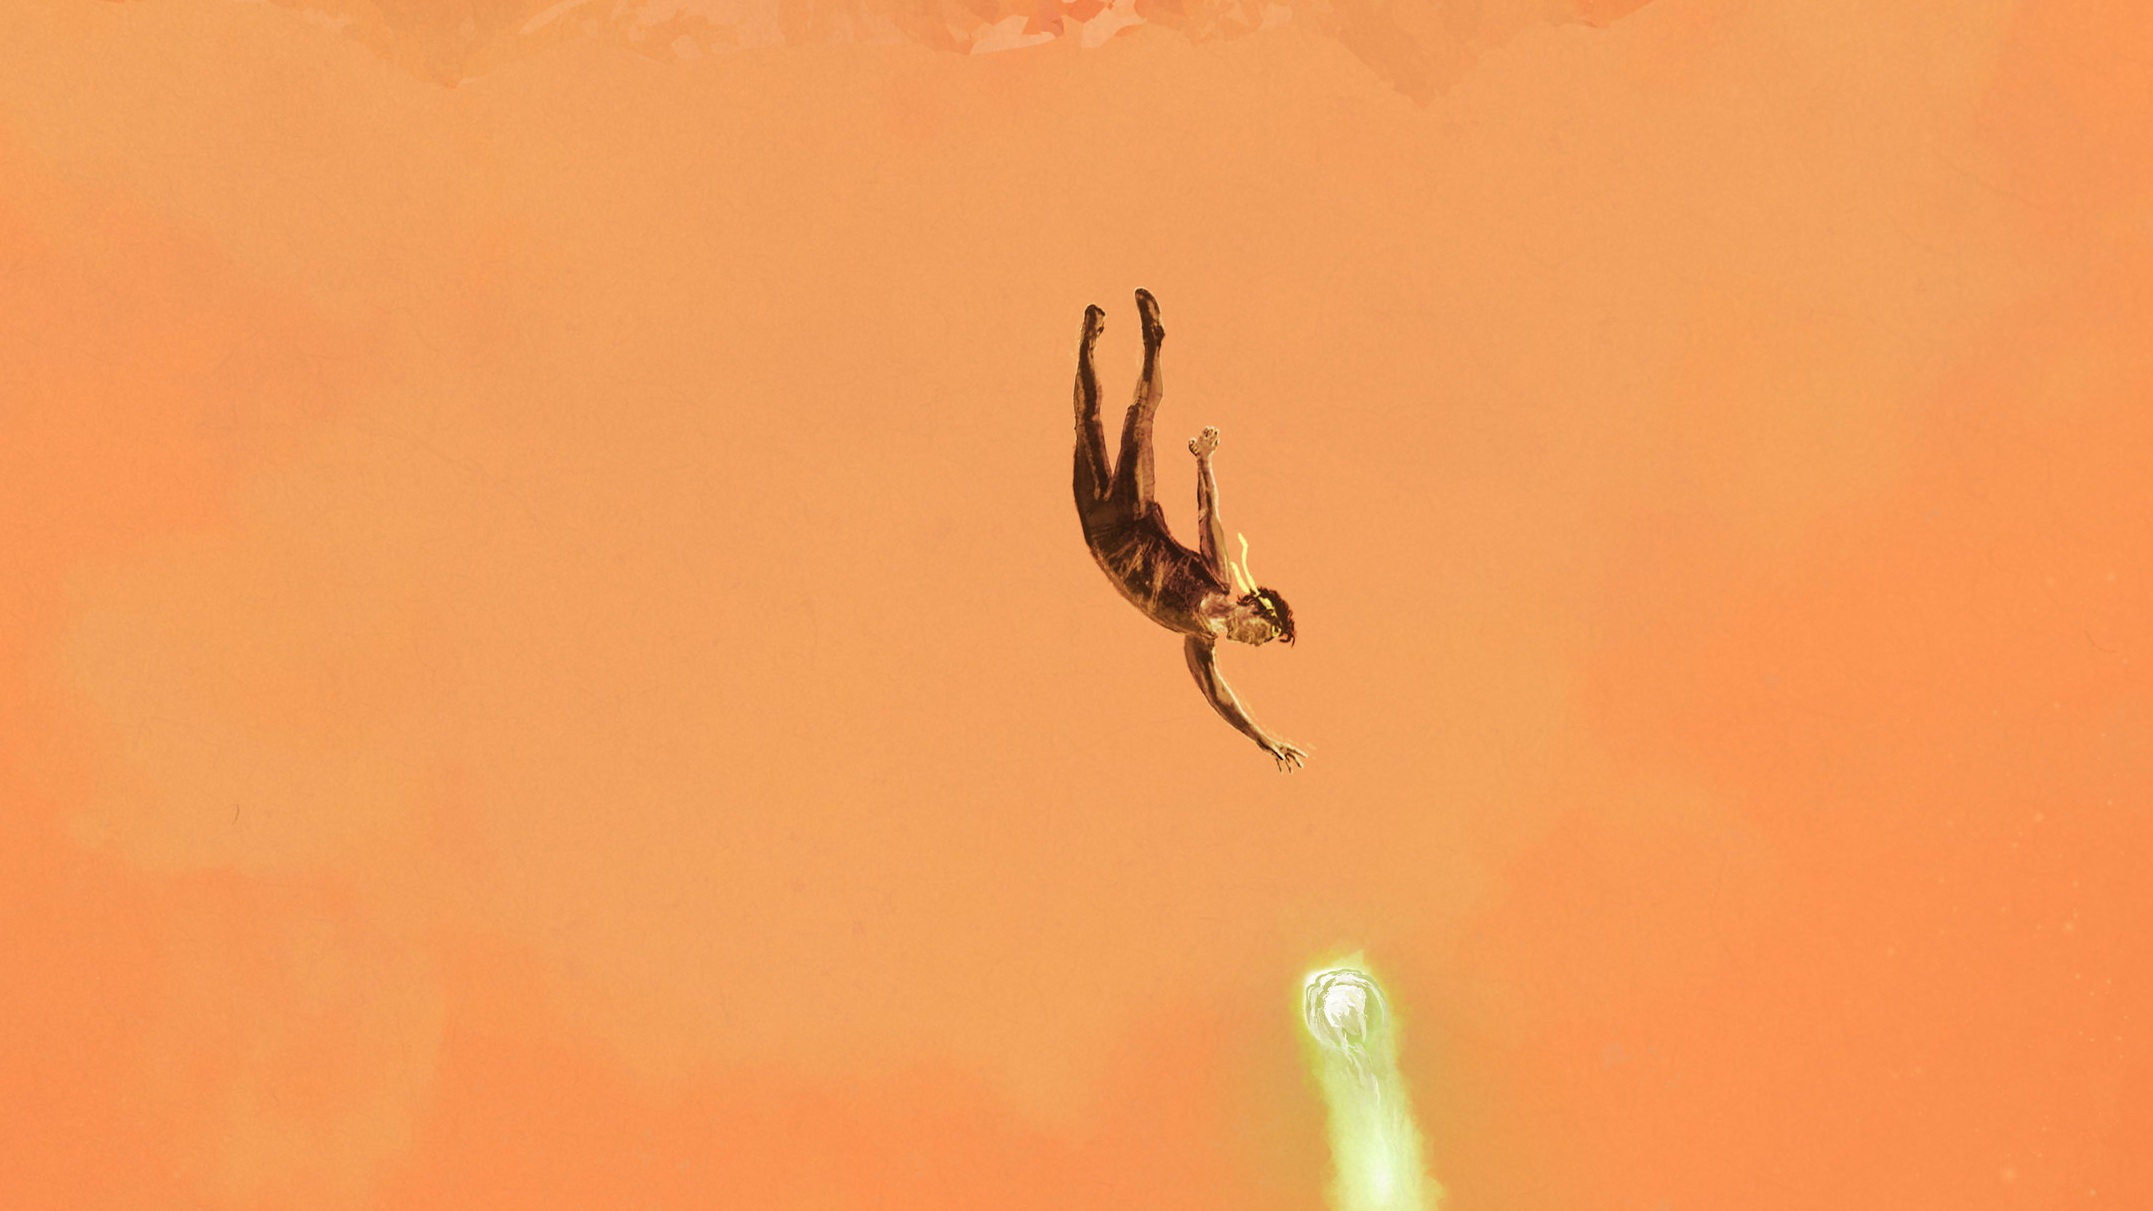 Catching+Comets+Poster.jpg